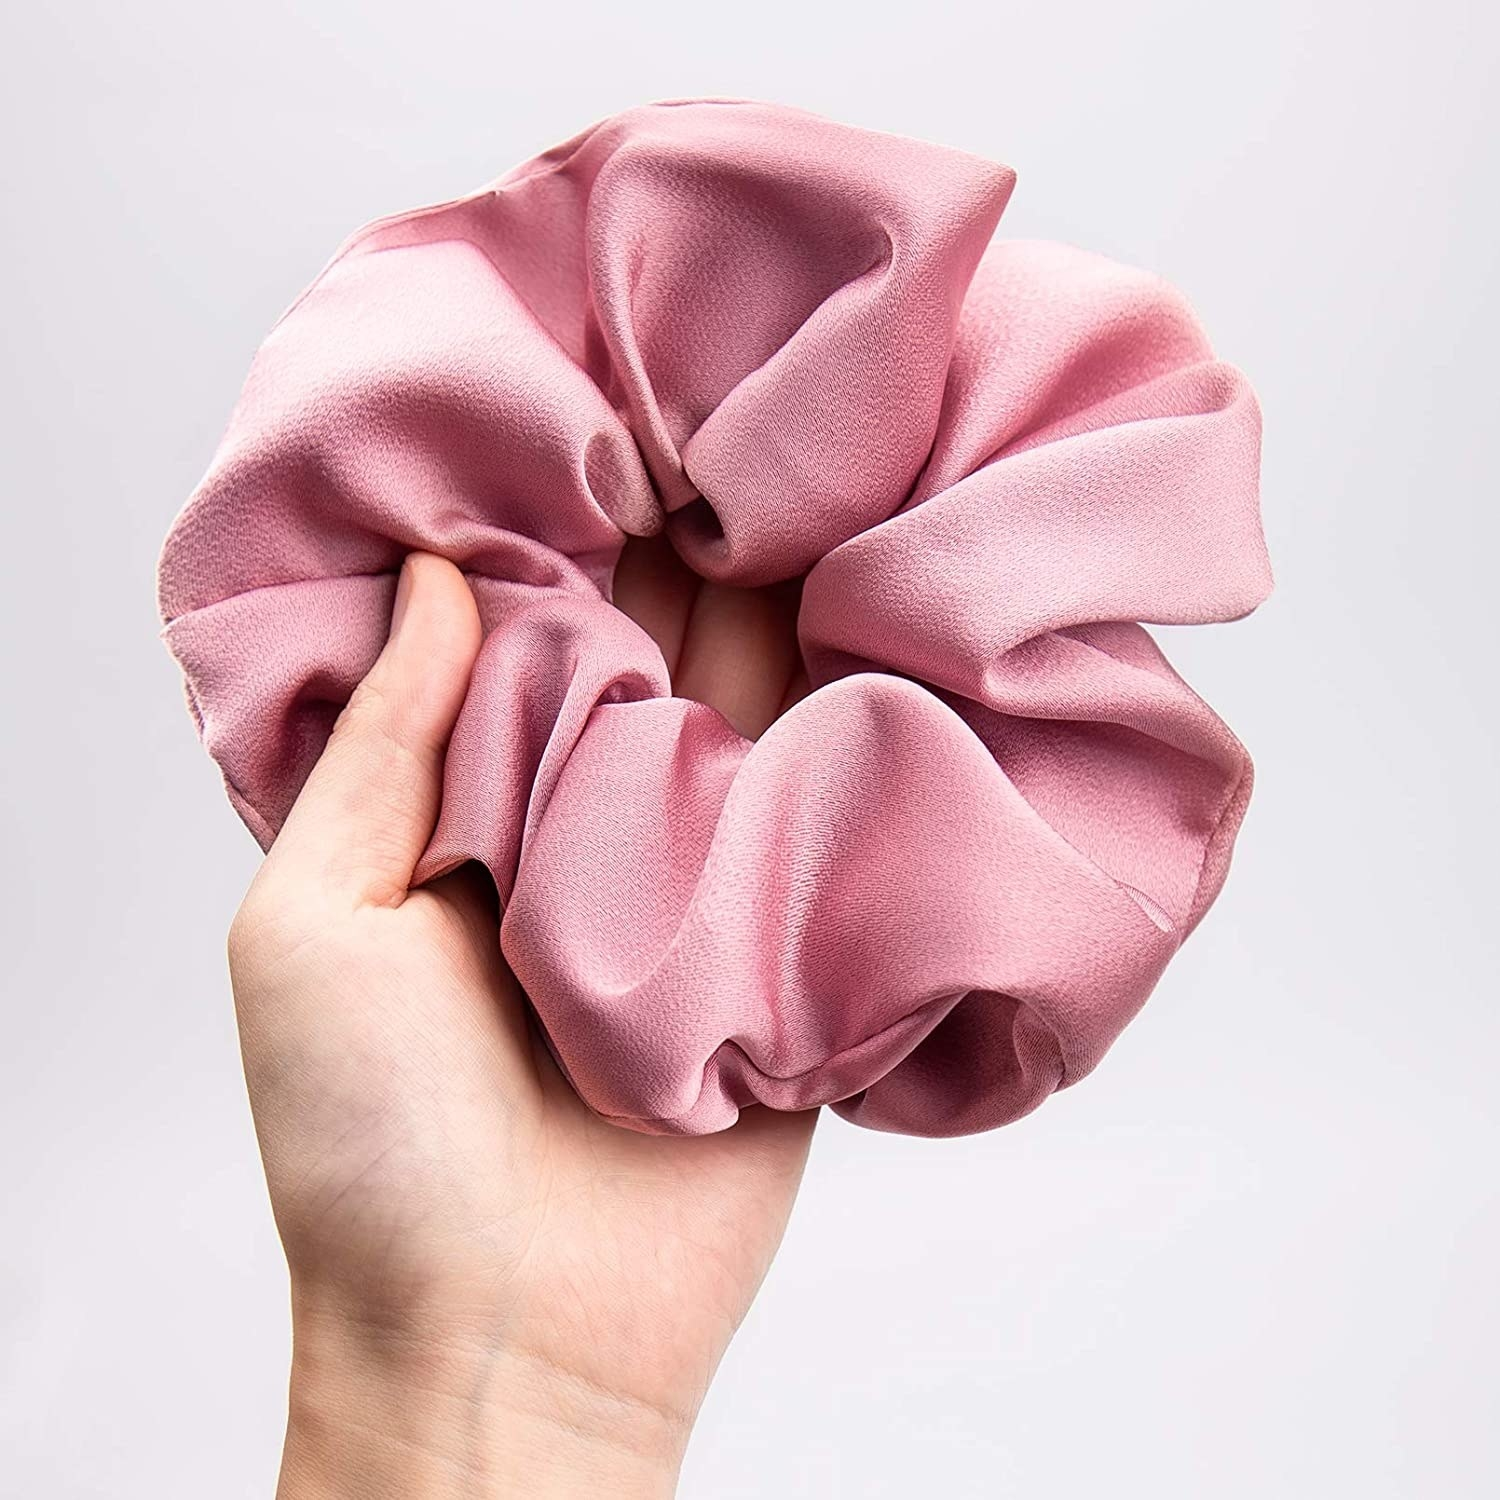 A person holding an extra-large scrunchie